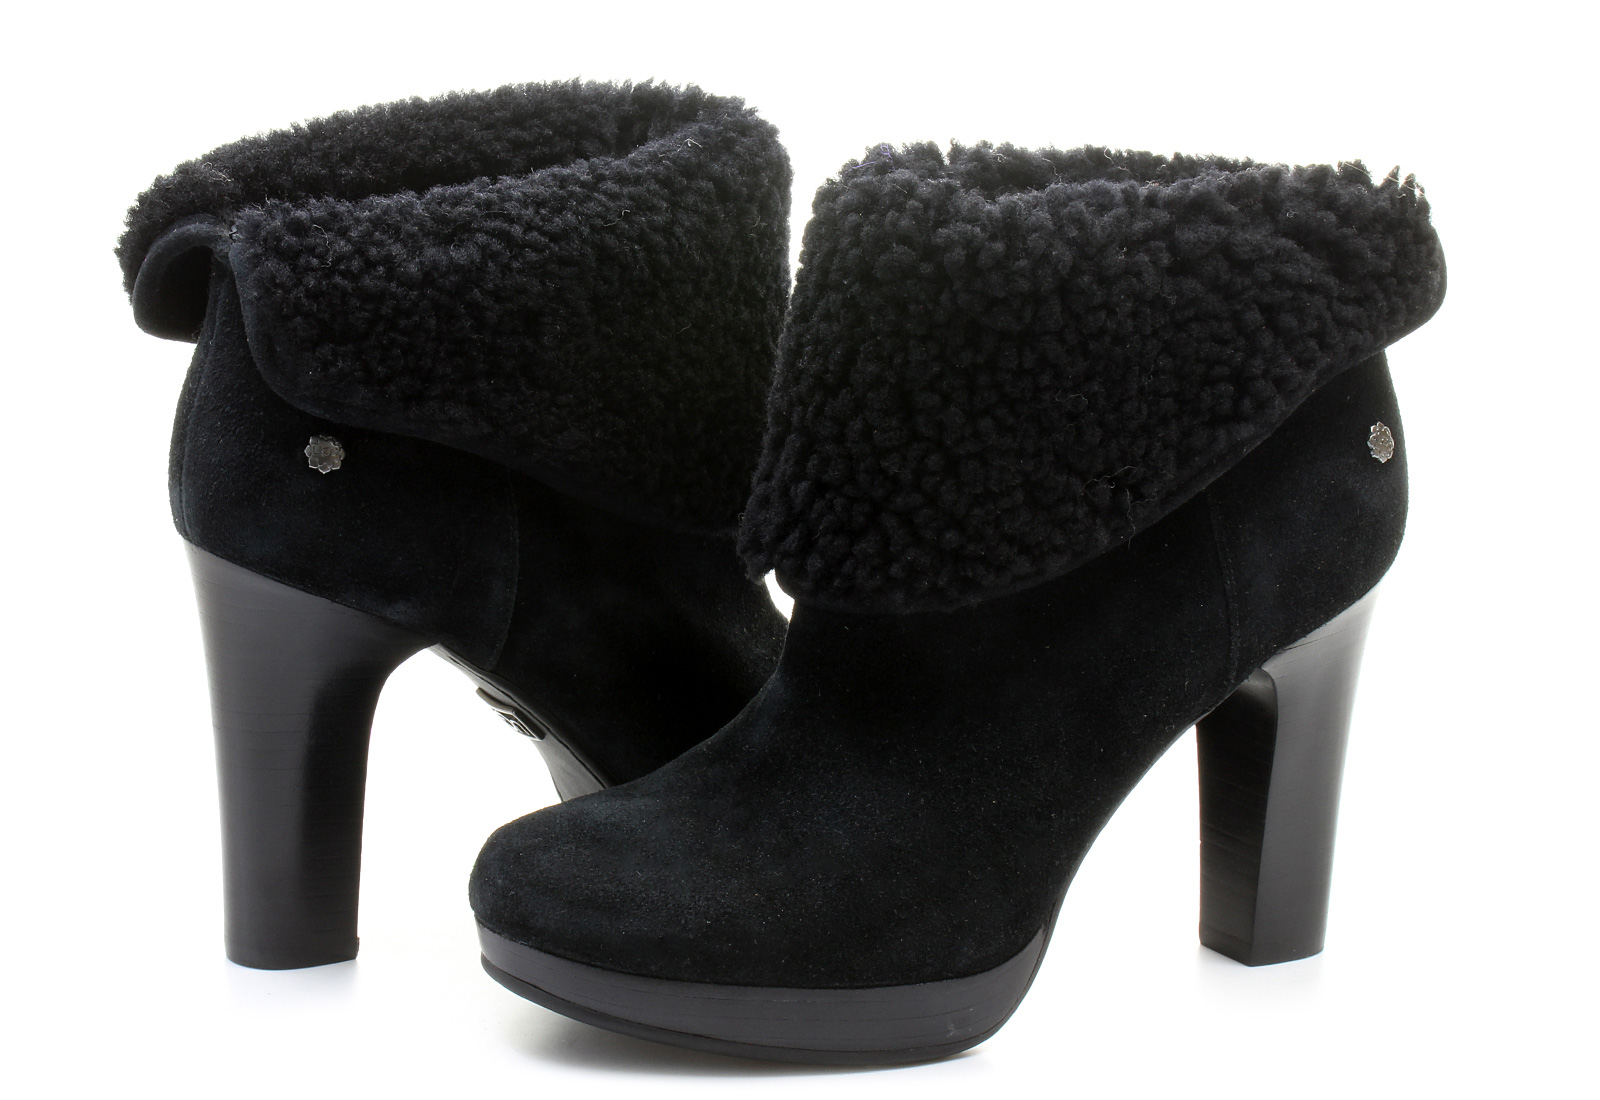 0abbded8a3c Ugg Australia Dandylion Ii Shearling Ankle Boots - cheap watches mgc ...